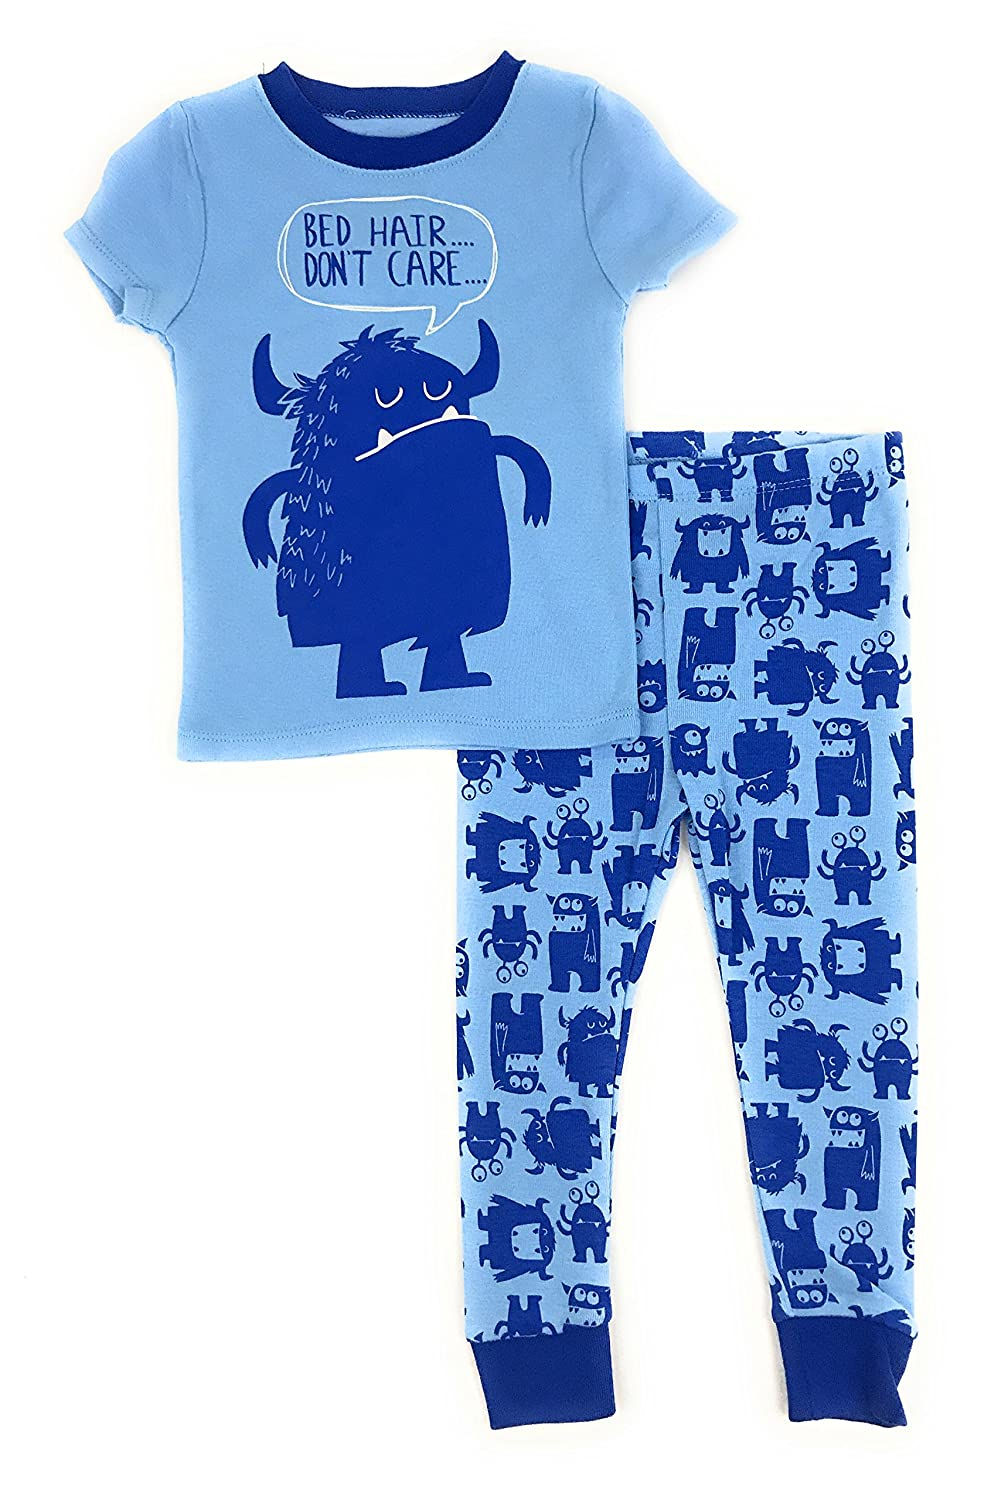 Baby and Toddler Boys Snug Fit Graphic Pajama Shirt and Pants Two-Piece Set